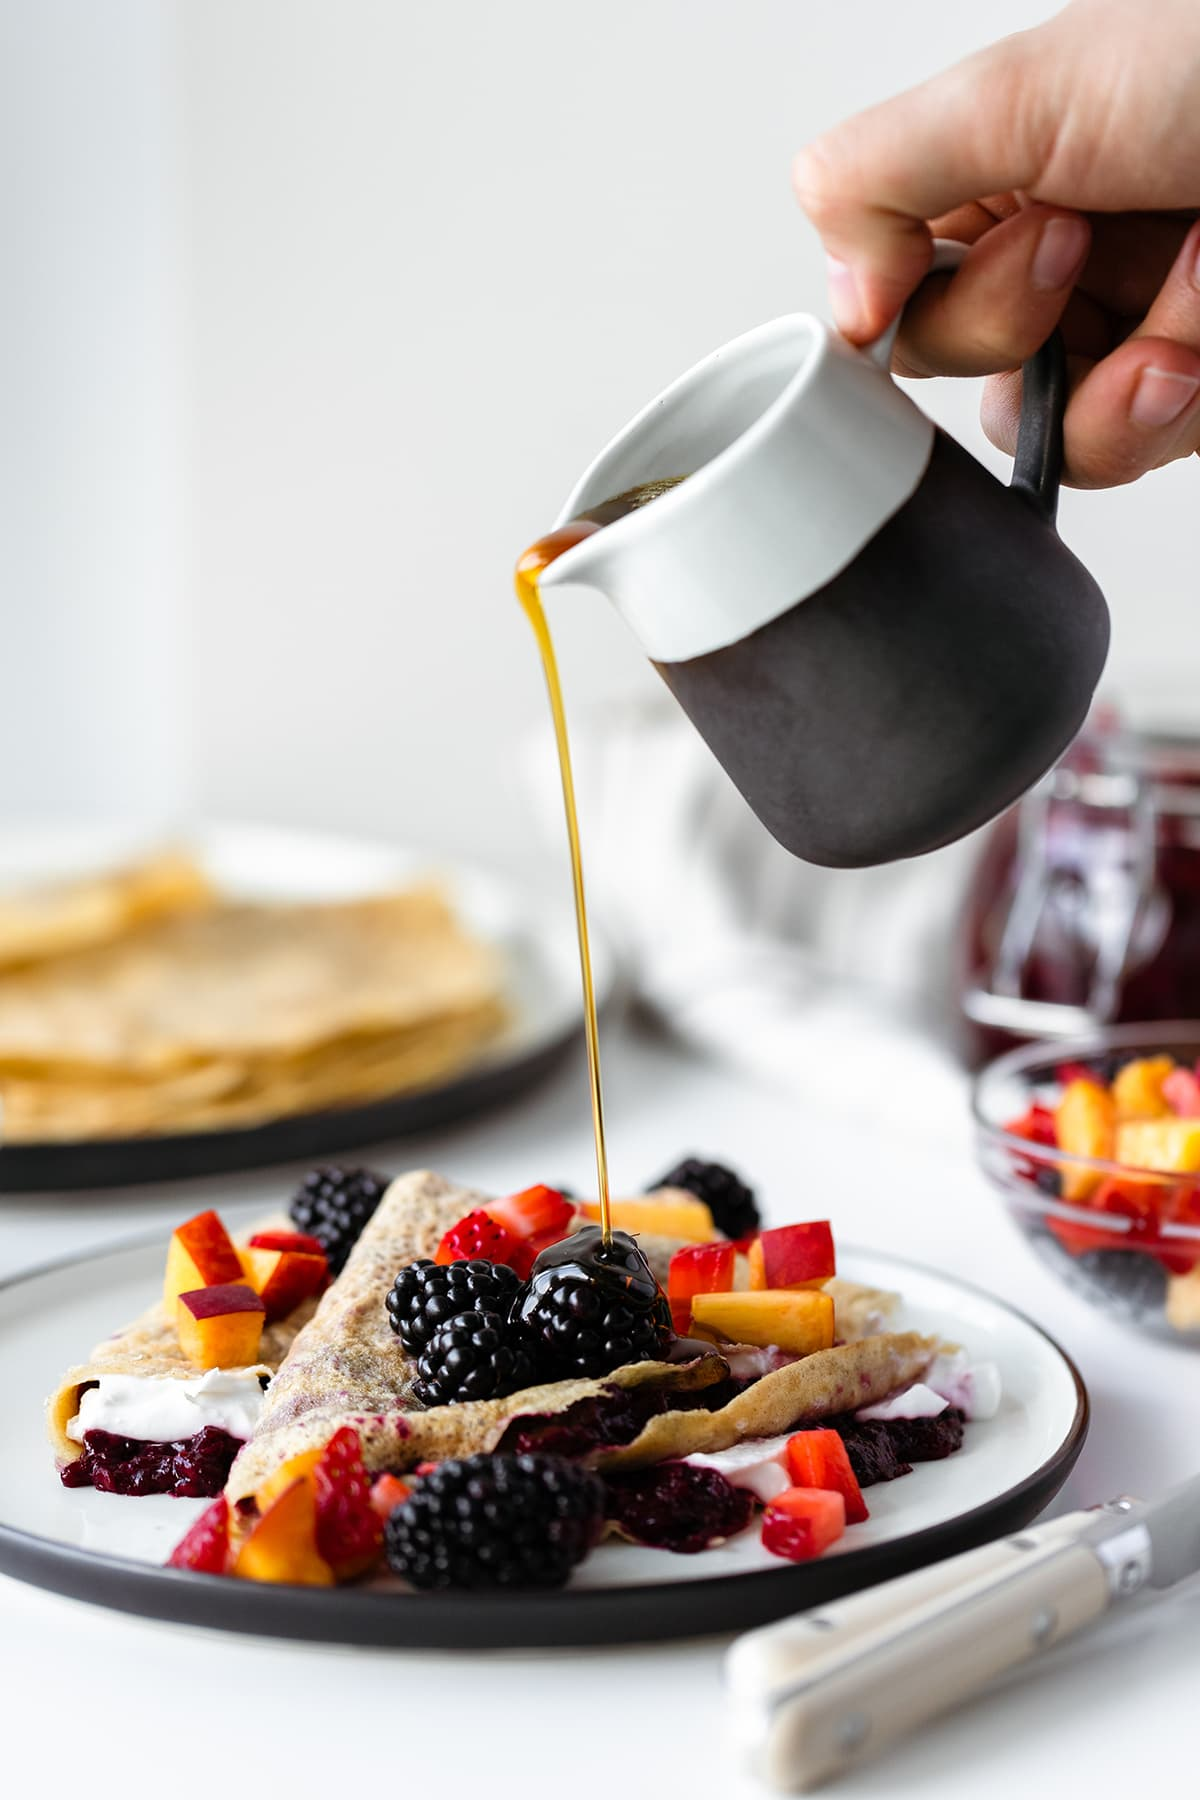 Maple syrup being poured over gluten-free crepes with Lavender Blackberry Jam